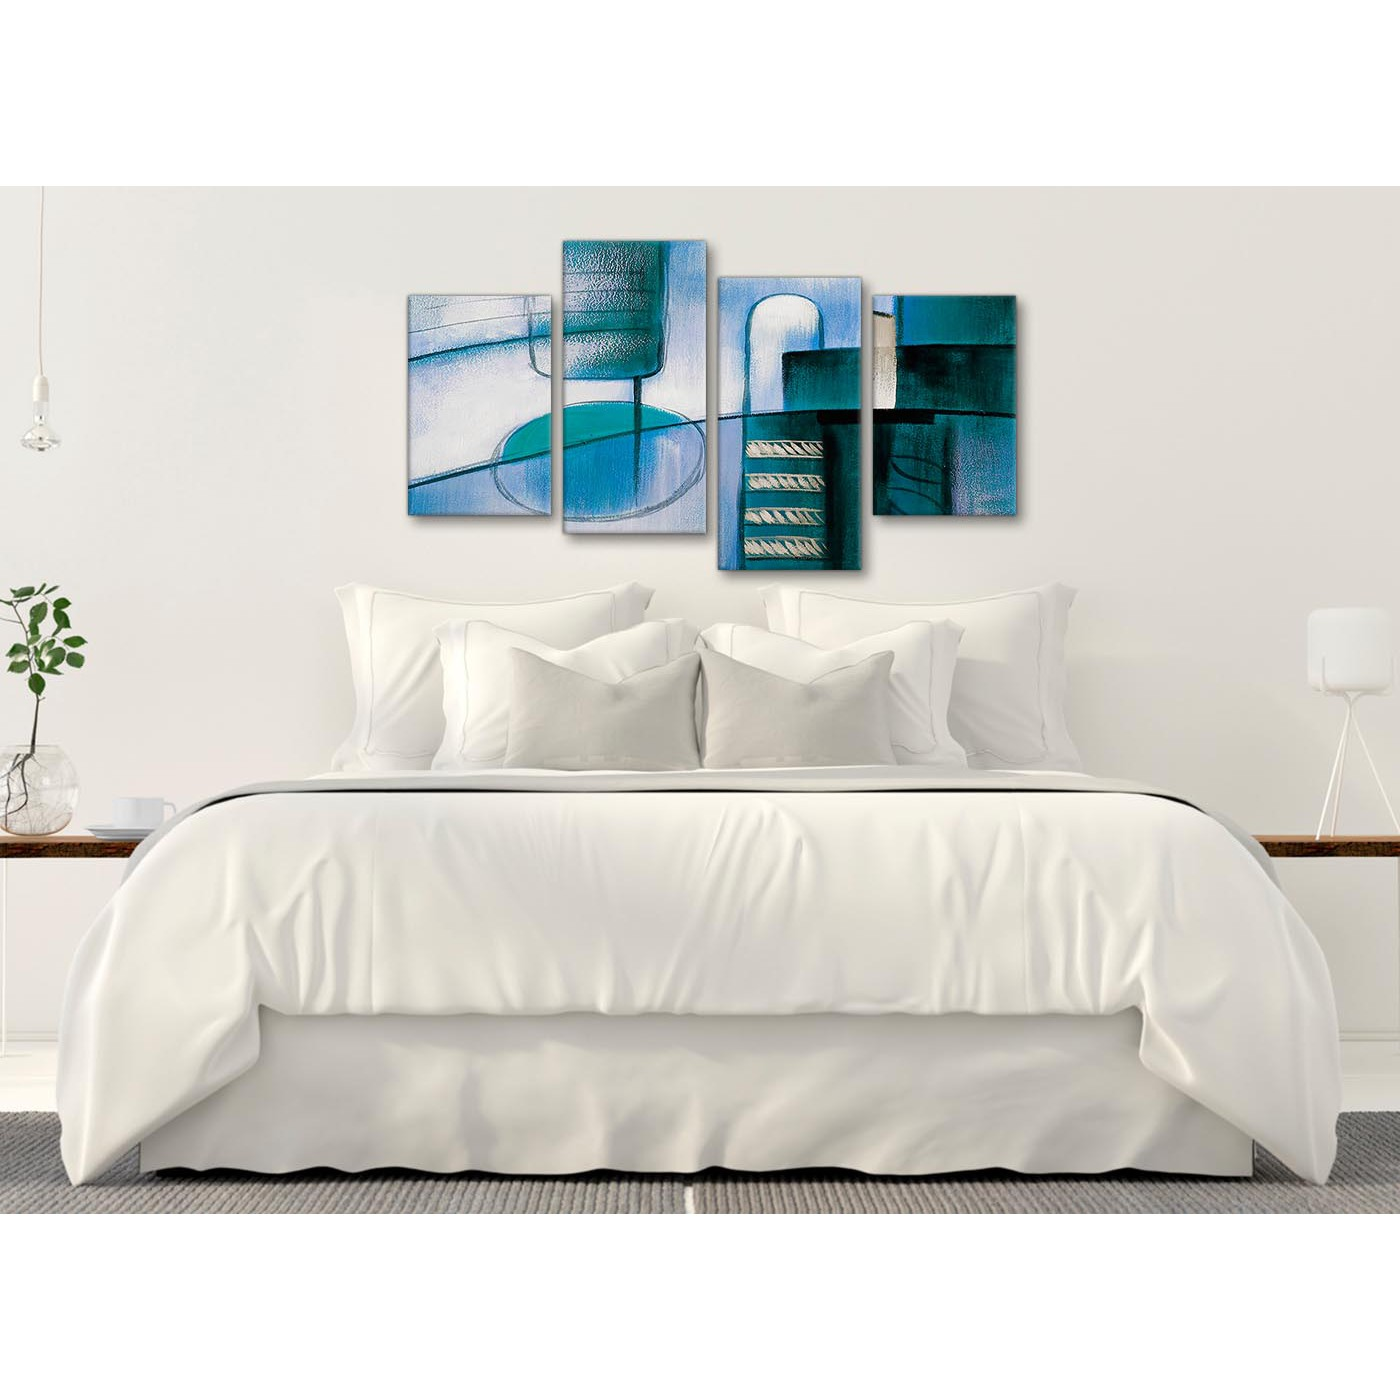 Large Art For Living Room Uk: Large Teal Cream Painting Abstract Bedroom Canvas Wall Art